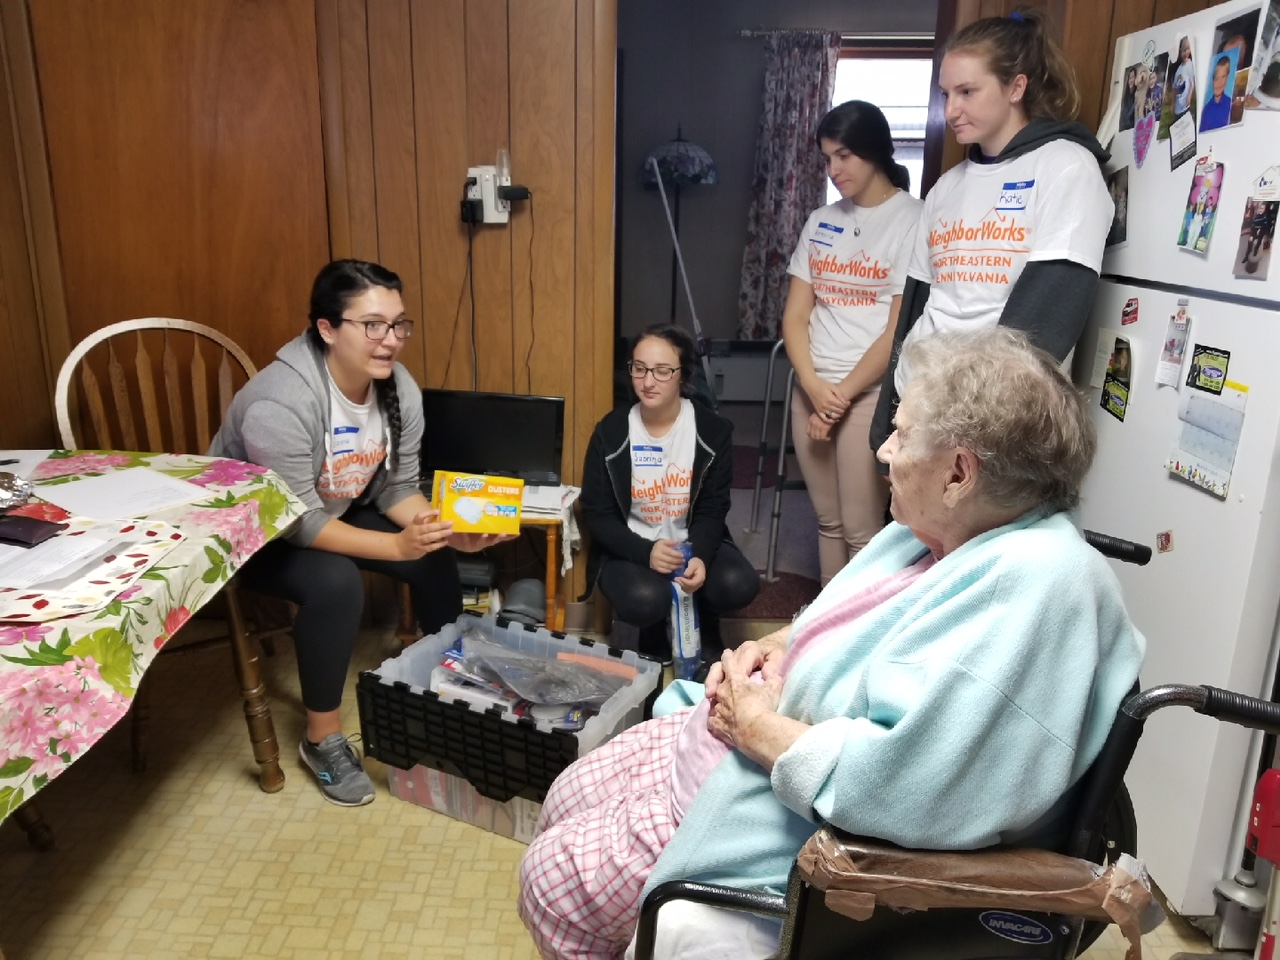 Occupational Therapists Bridge the Gap between Health and Home for Older Adults